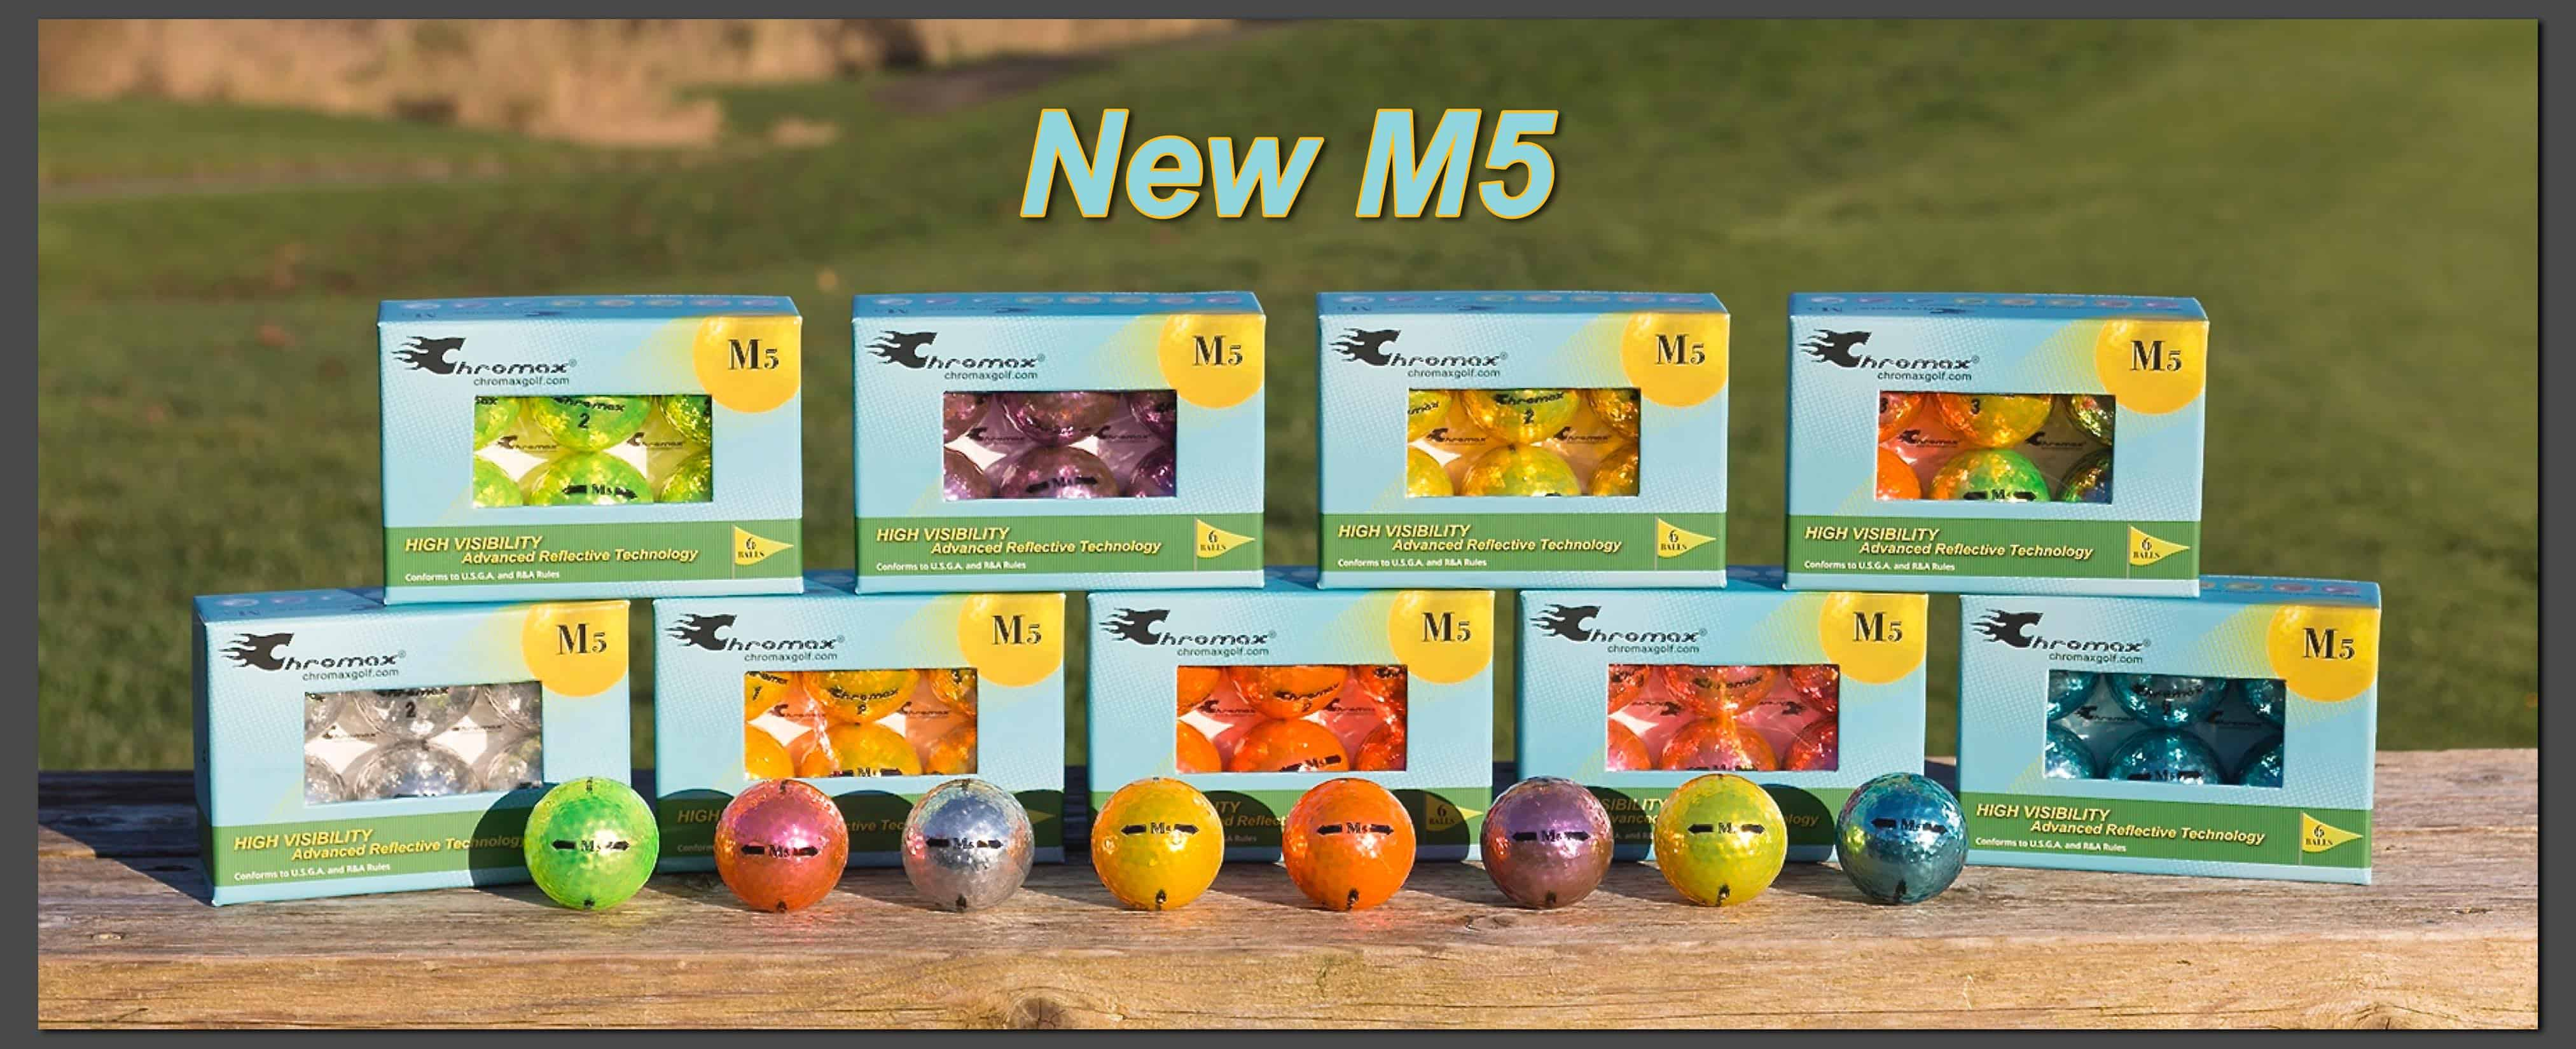 M5 High Visibility Colored Golf Balls